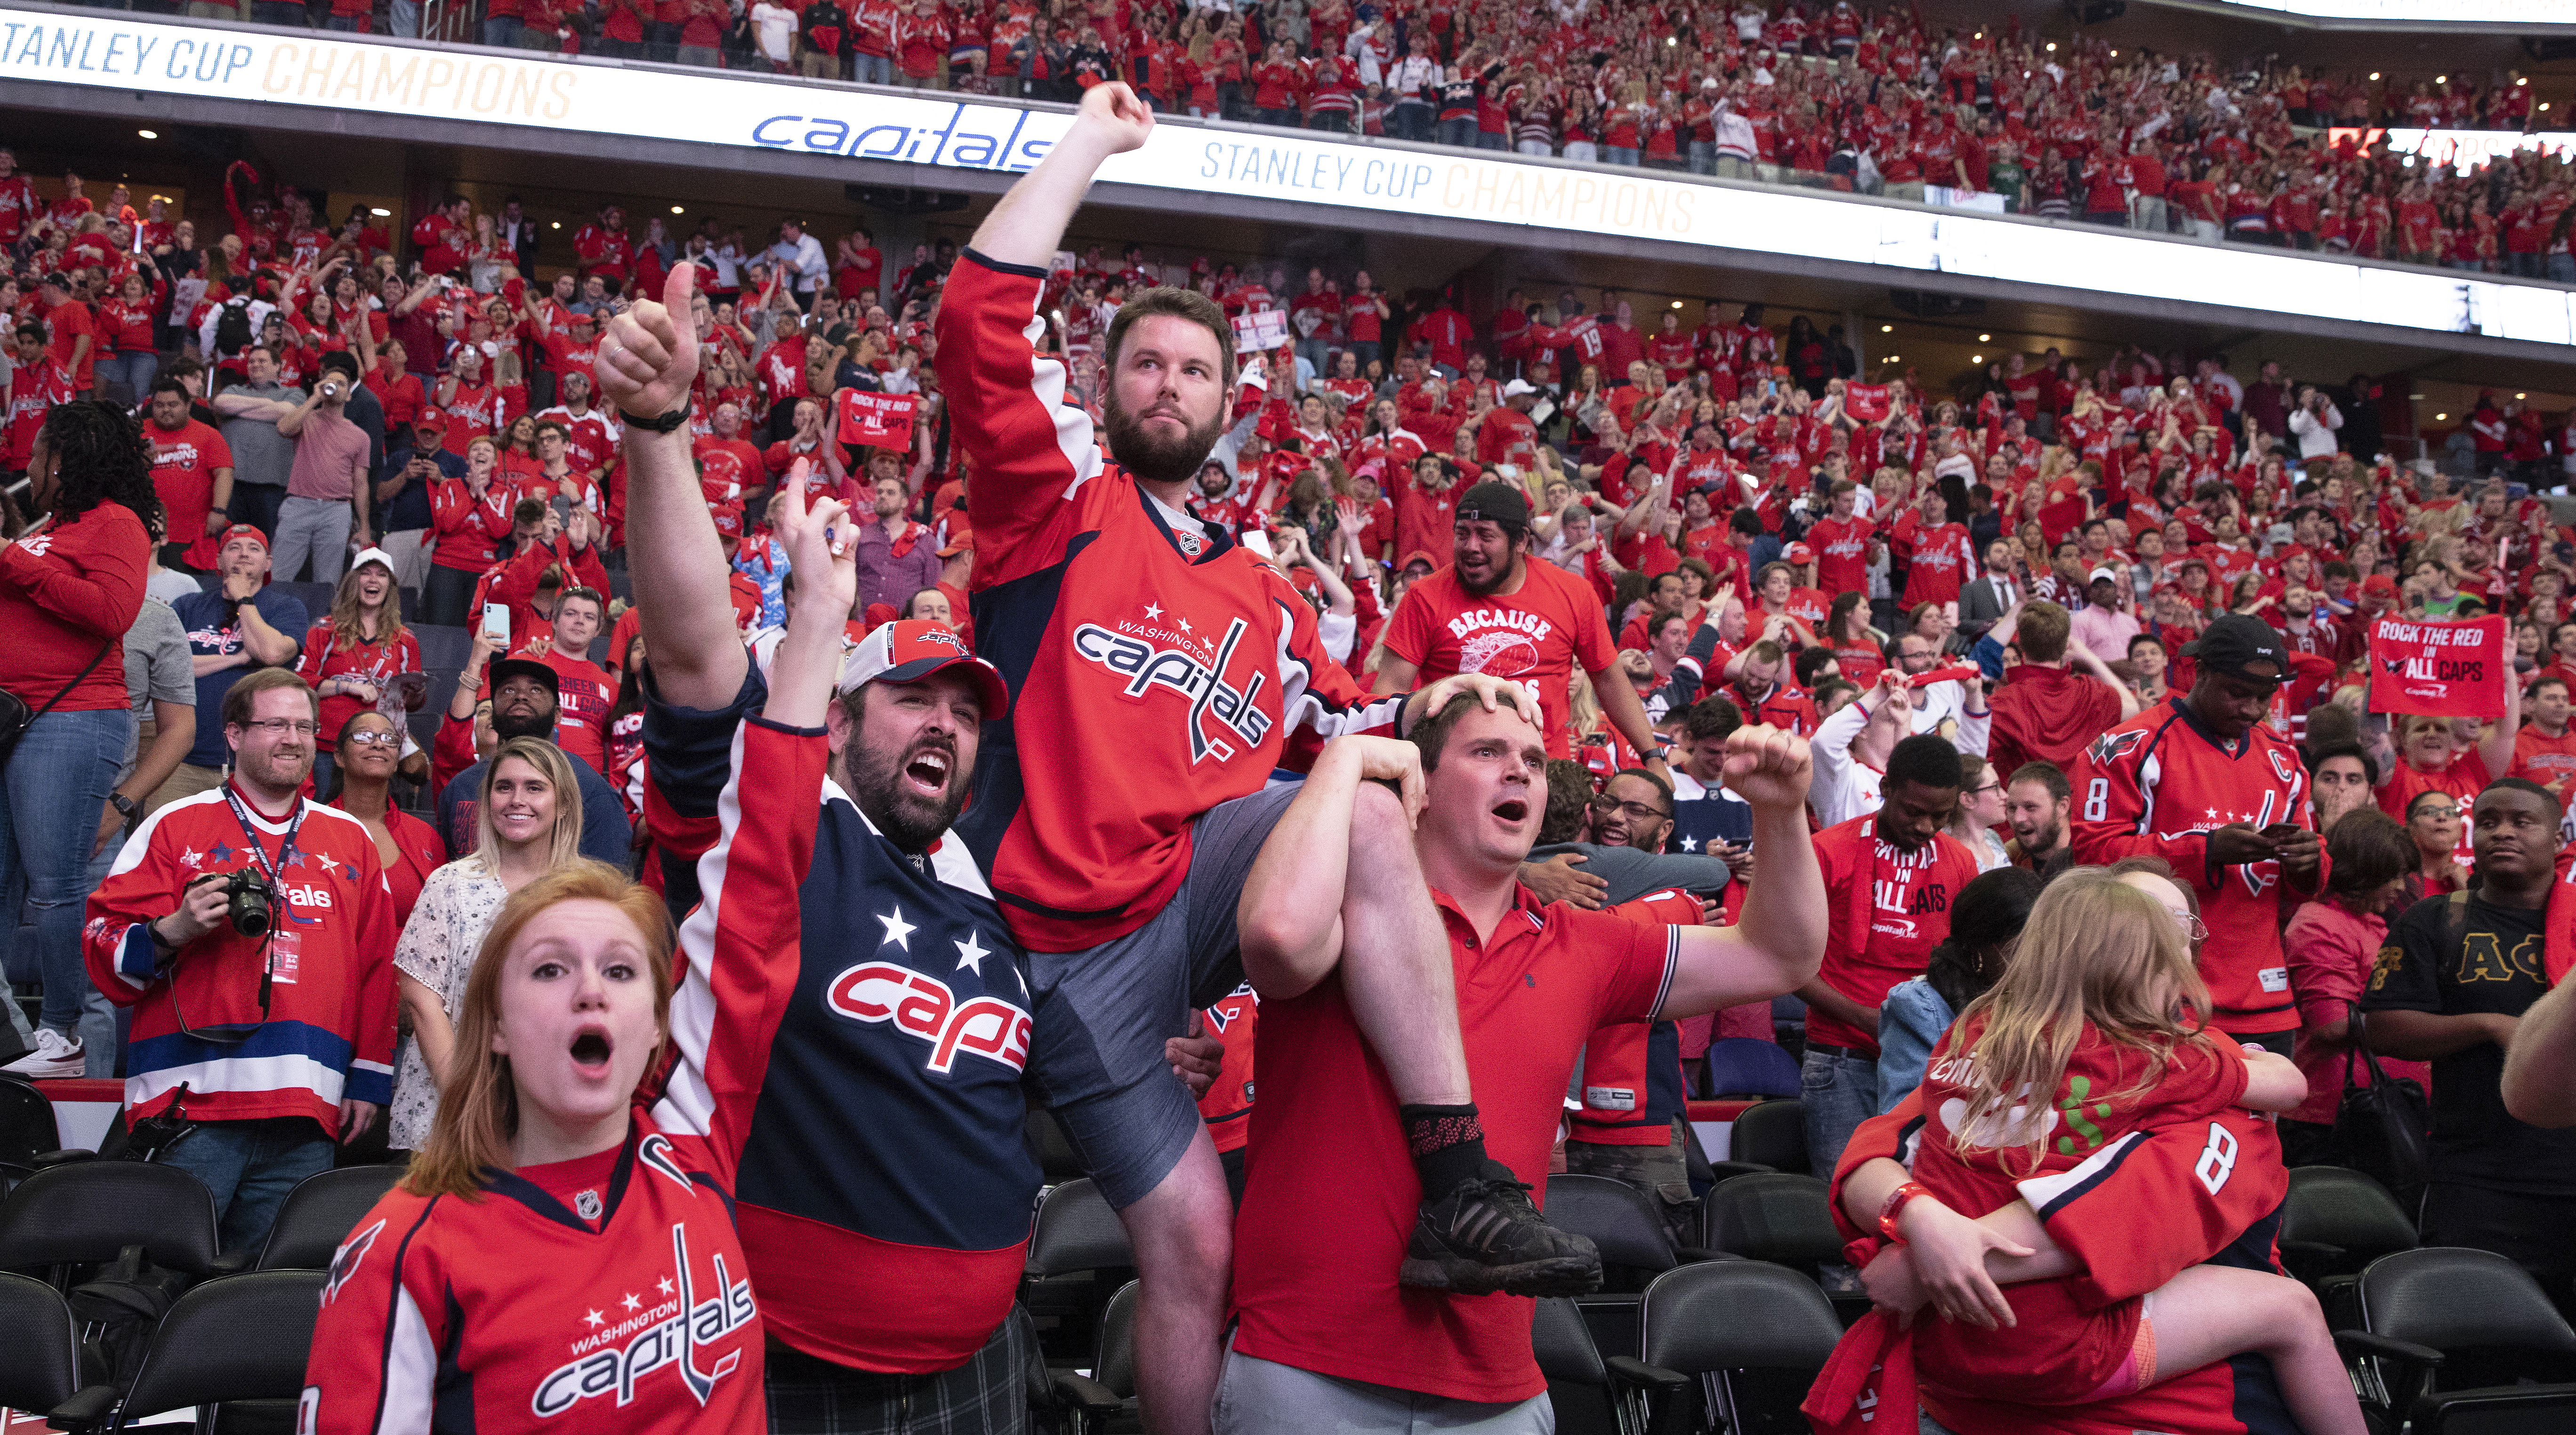 Washington Capitals' Fans Gather In D.C. To Watch Game 5 Of Stanley Cup Finals